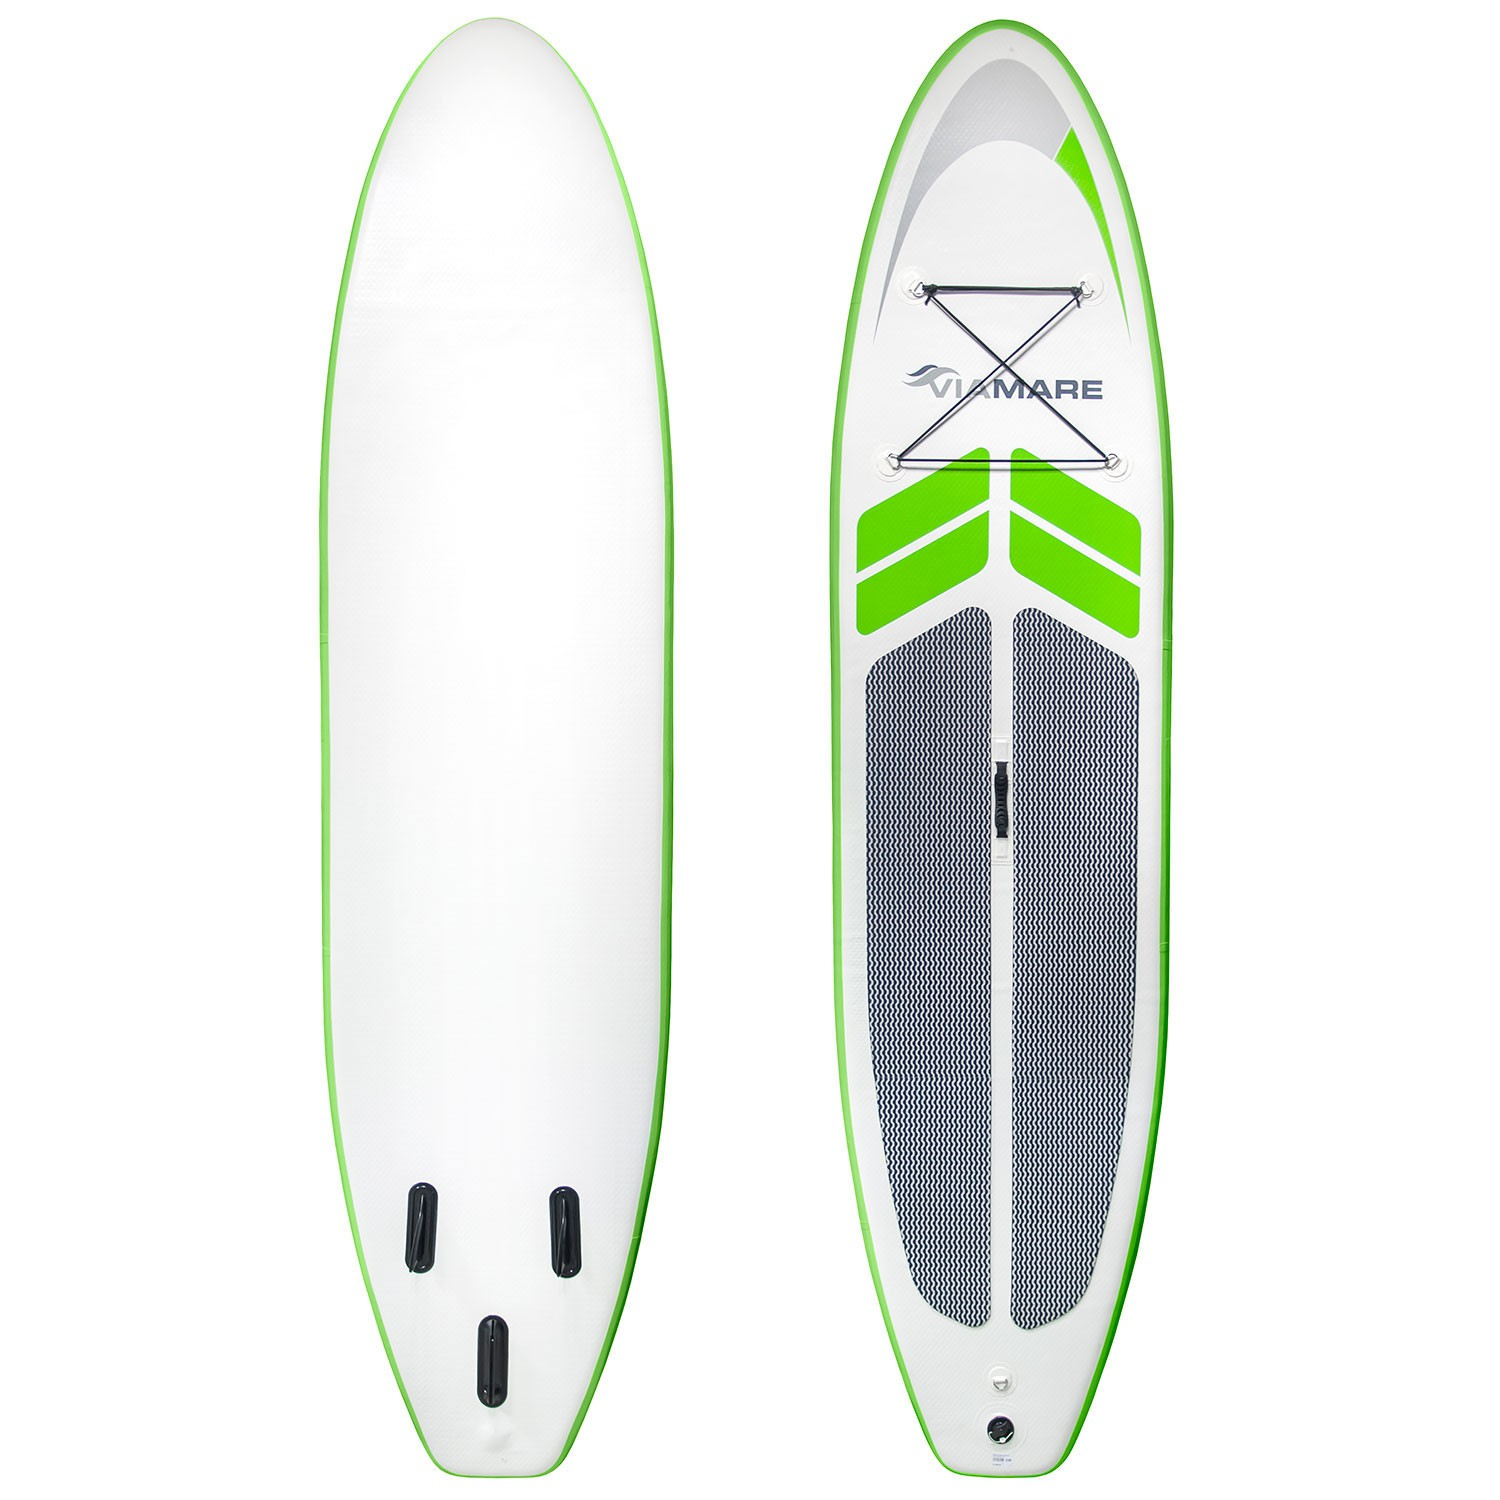 paddleboard Via Nova Viamare 330 green